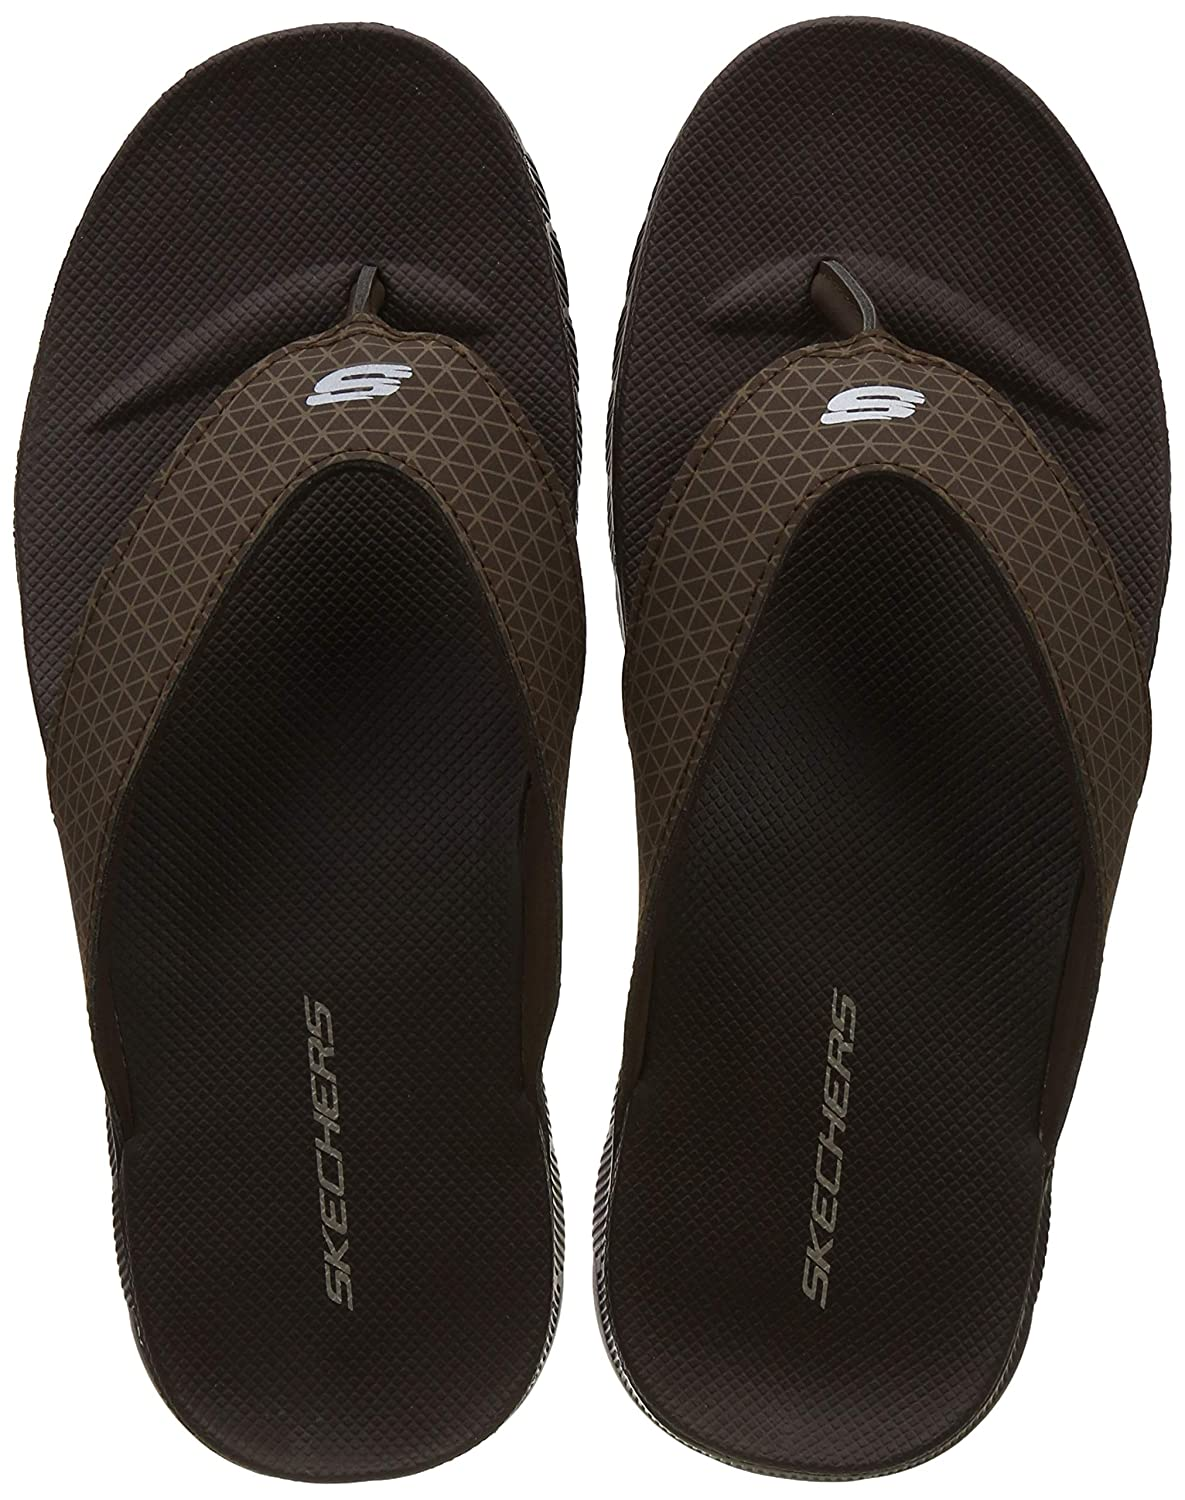 f3078fc44700b6 Skechers Men s Hawaii Thong Sandals  Buy Online at Low Prices in India -  Amazon.in